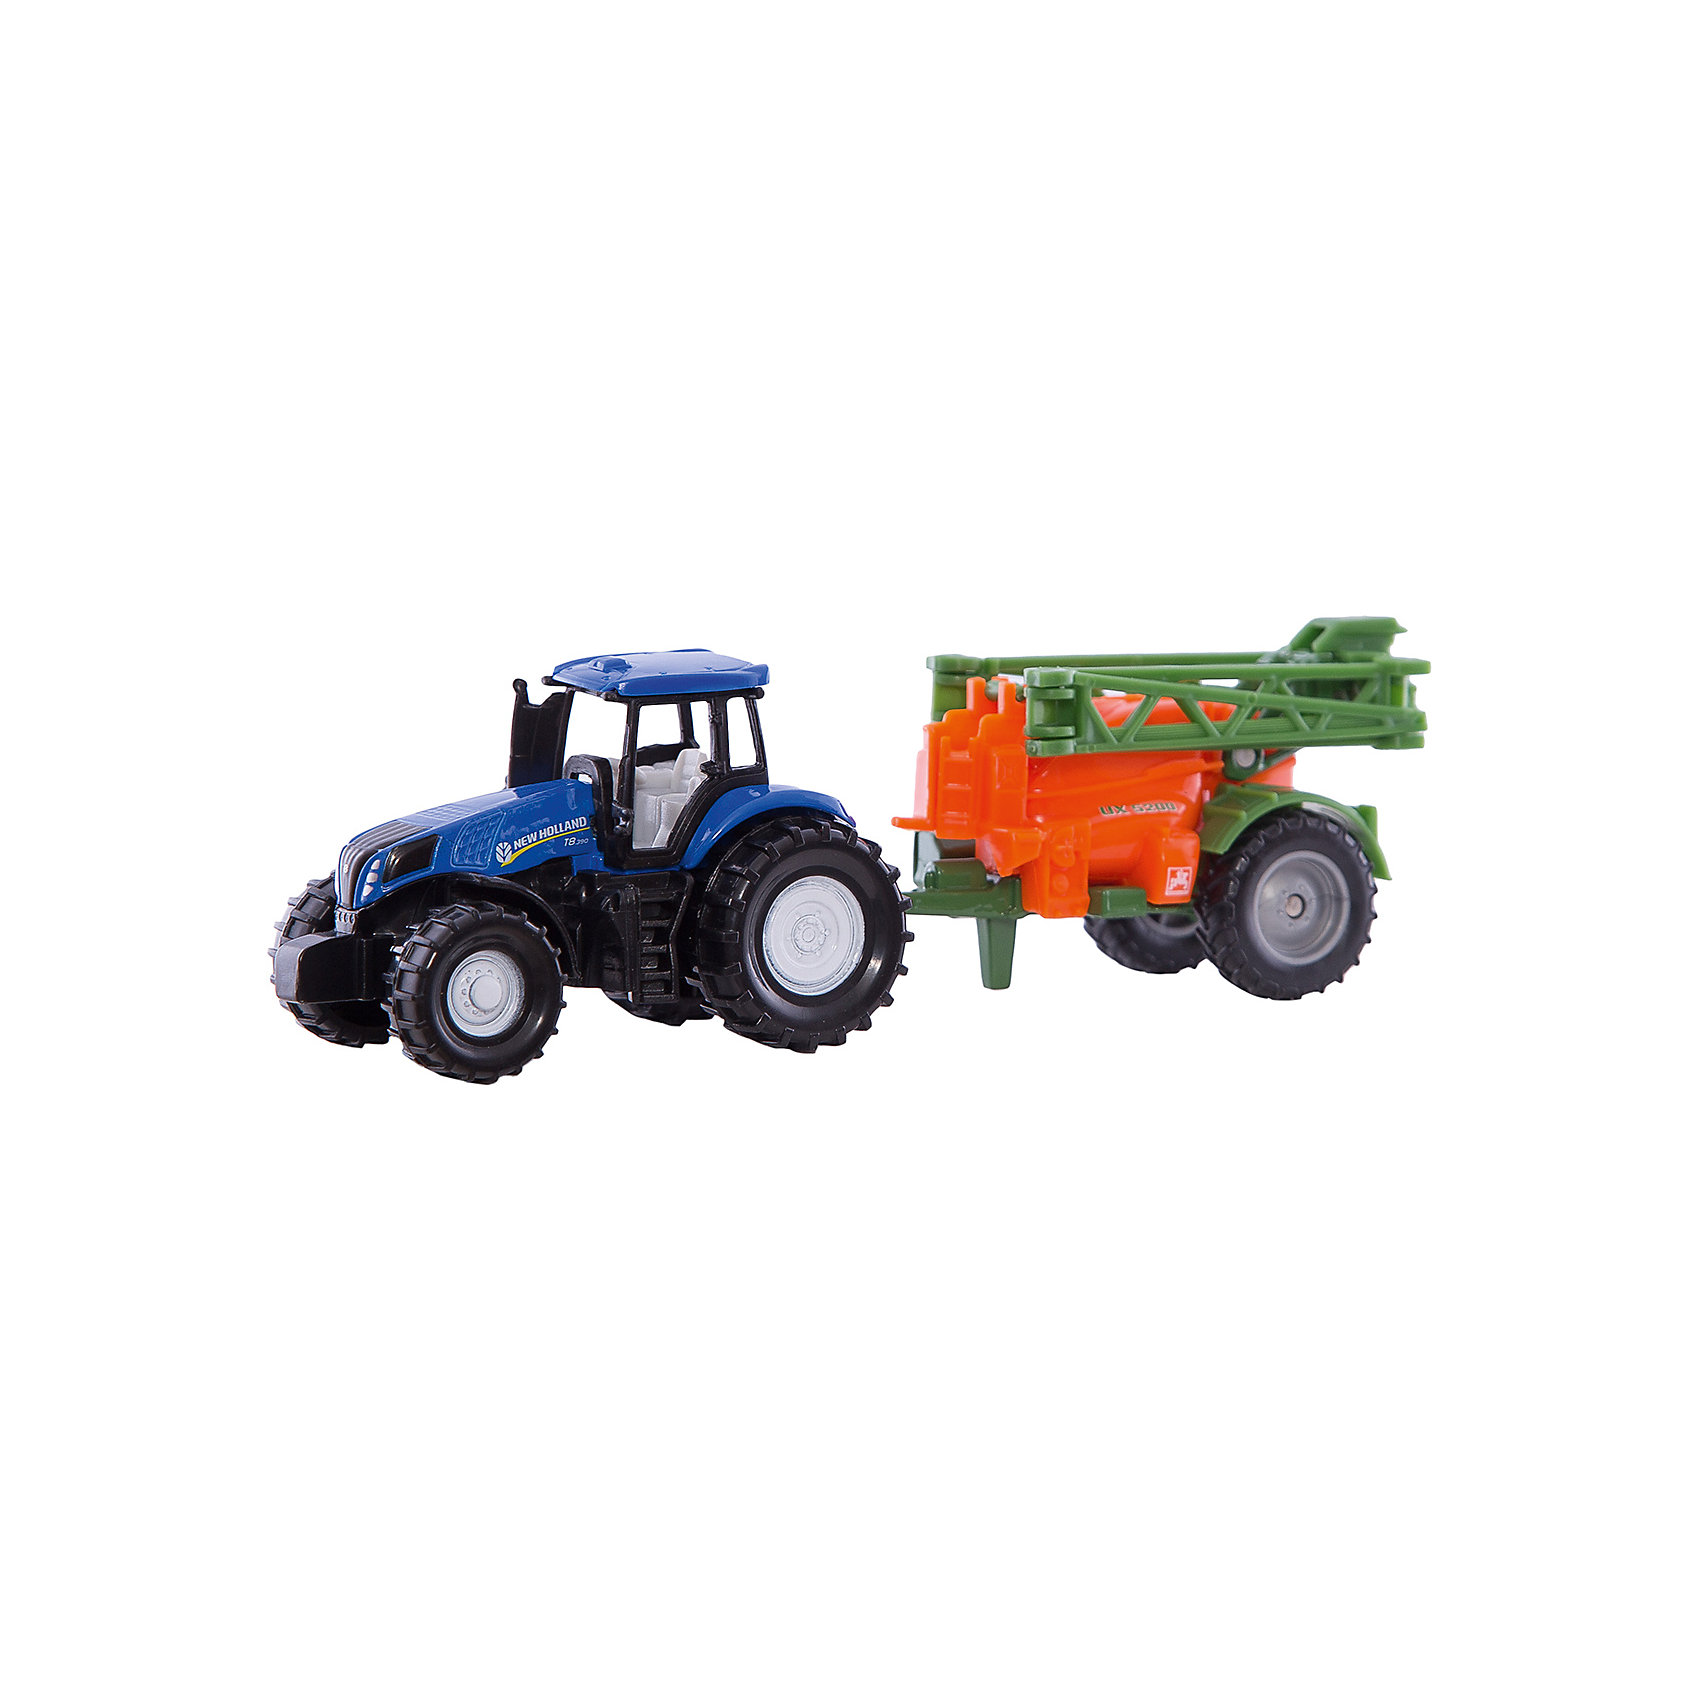 SIKU Трактор с прицепом, SIKU игрушка siku трактор new holland t8 390 6 7 3 4 4 4см 1012